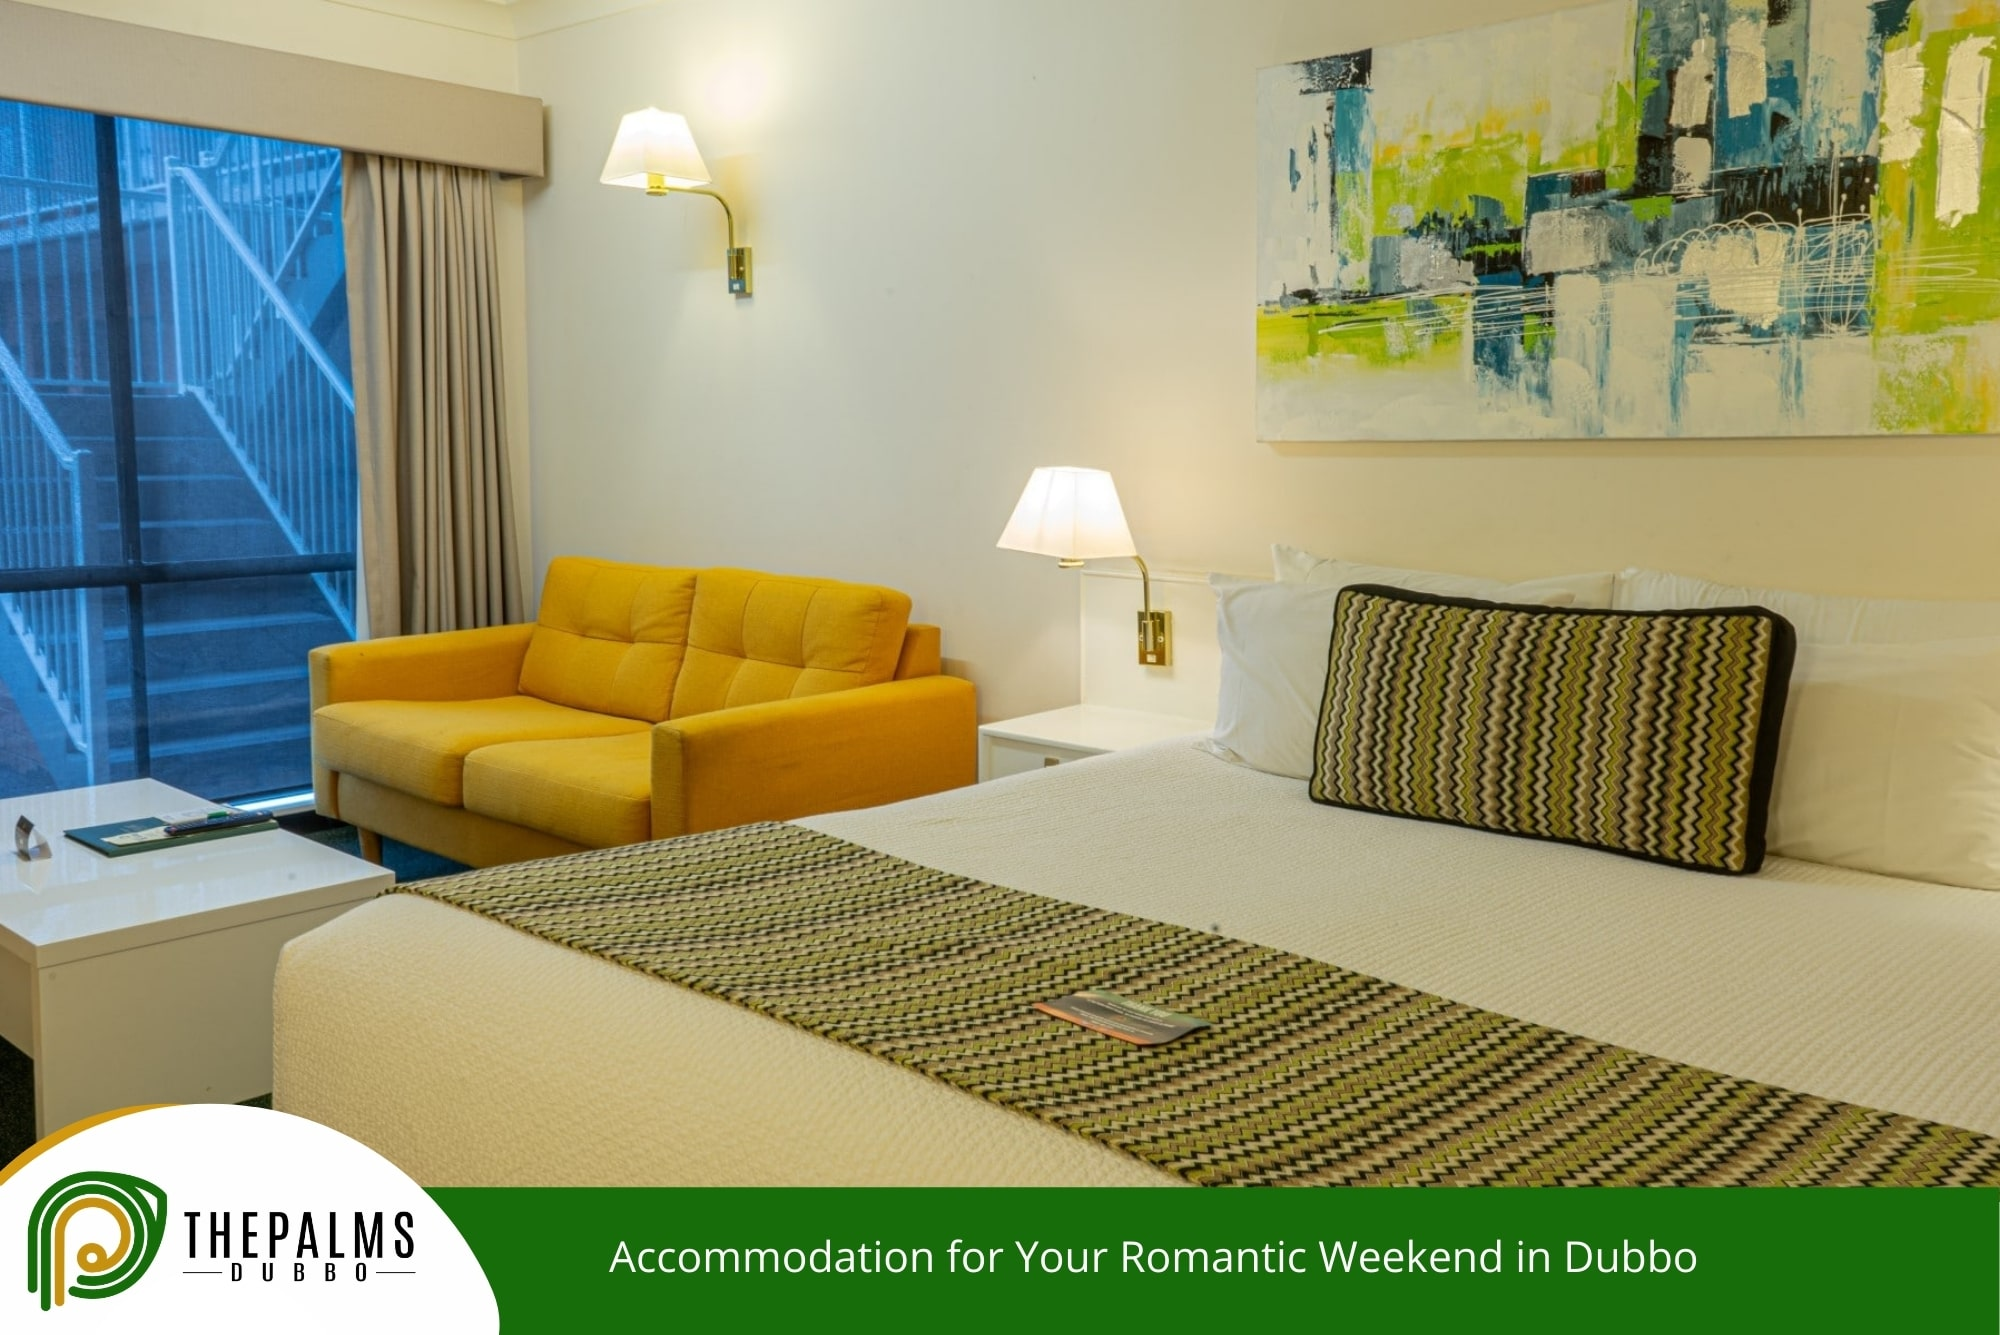 Accommodation for Your Romantic Weekend in Dubbo